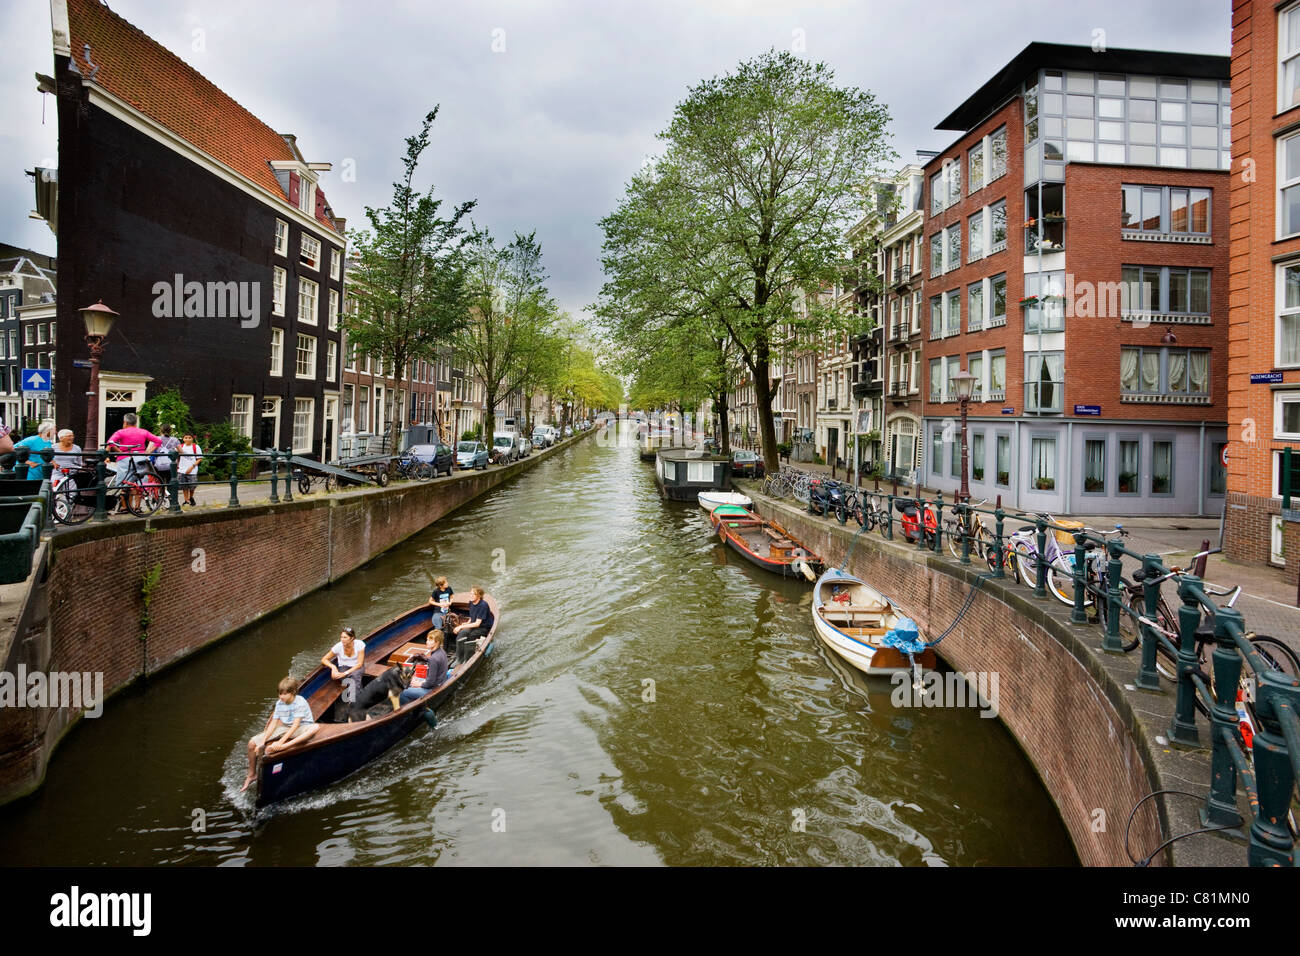 People sailing on canal in Amsterdam - Stock Image